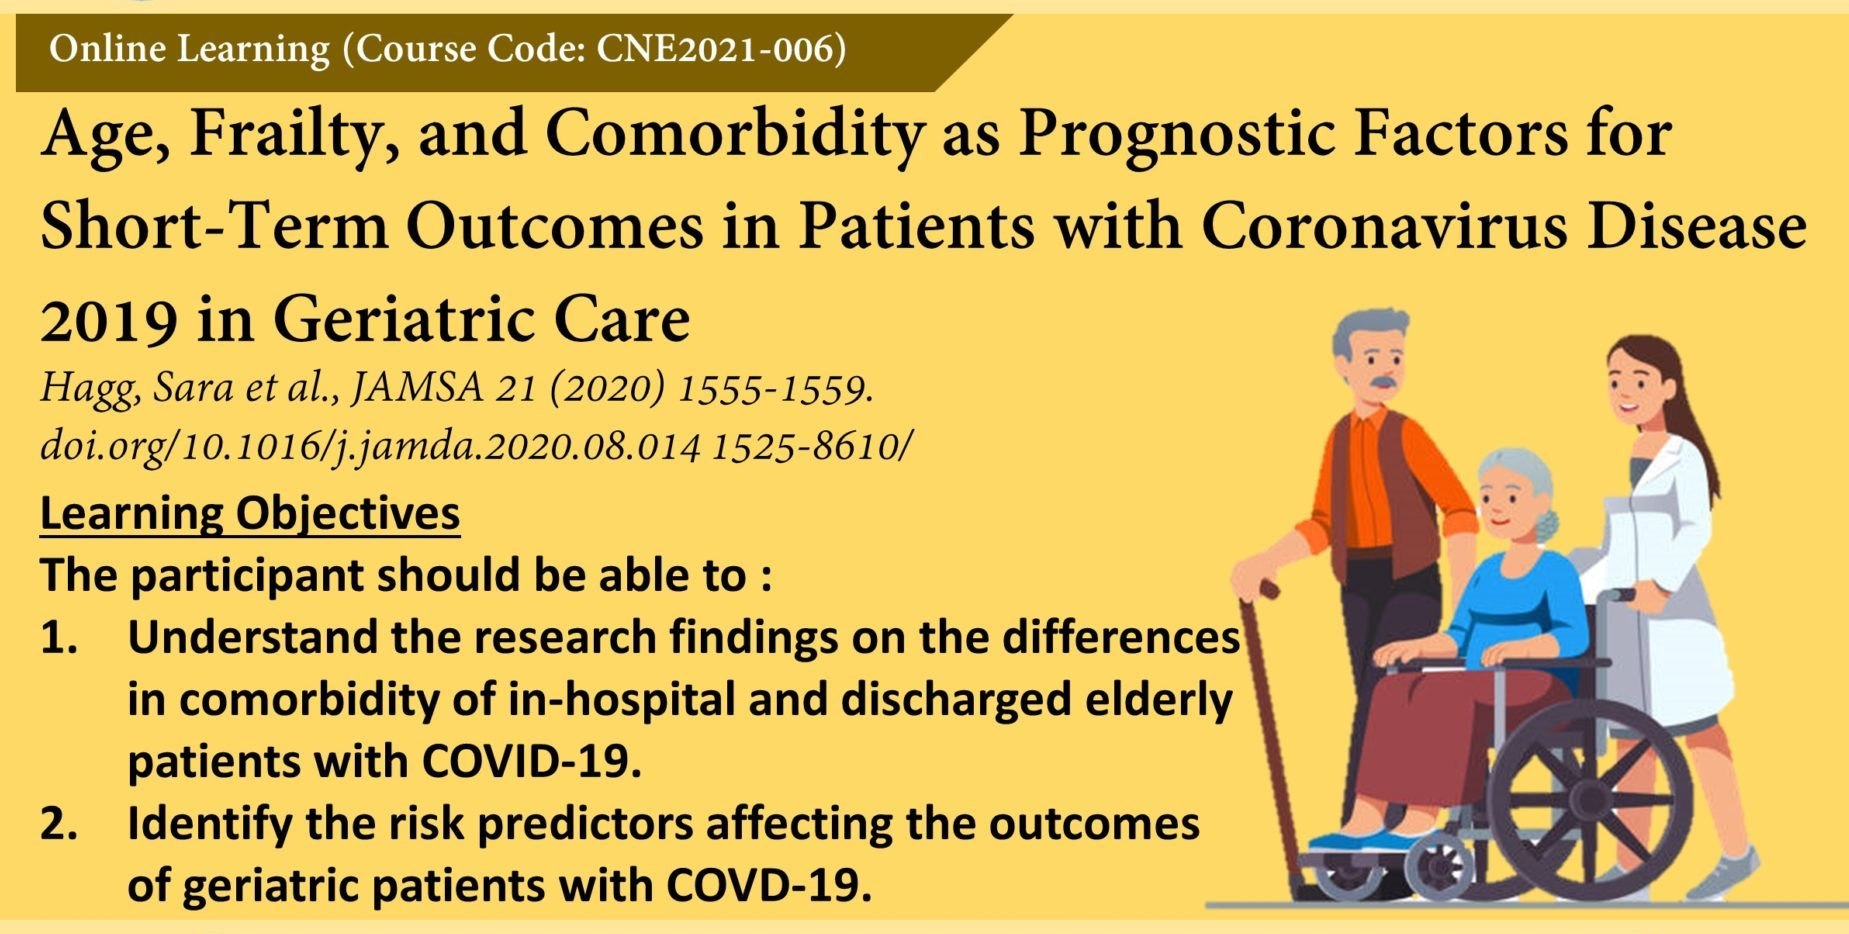 Age, Frailty, and Comorbidity as Progonostic Factors for Short-Term Outcomes in Patients with Coronavirus Disease 2019 in Geriatric Care